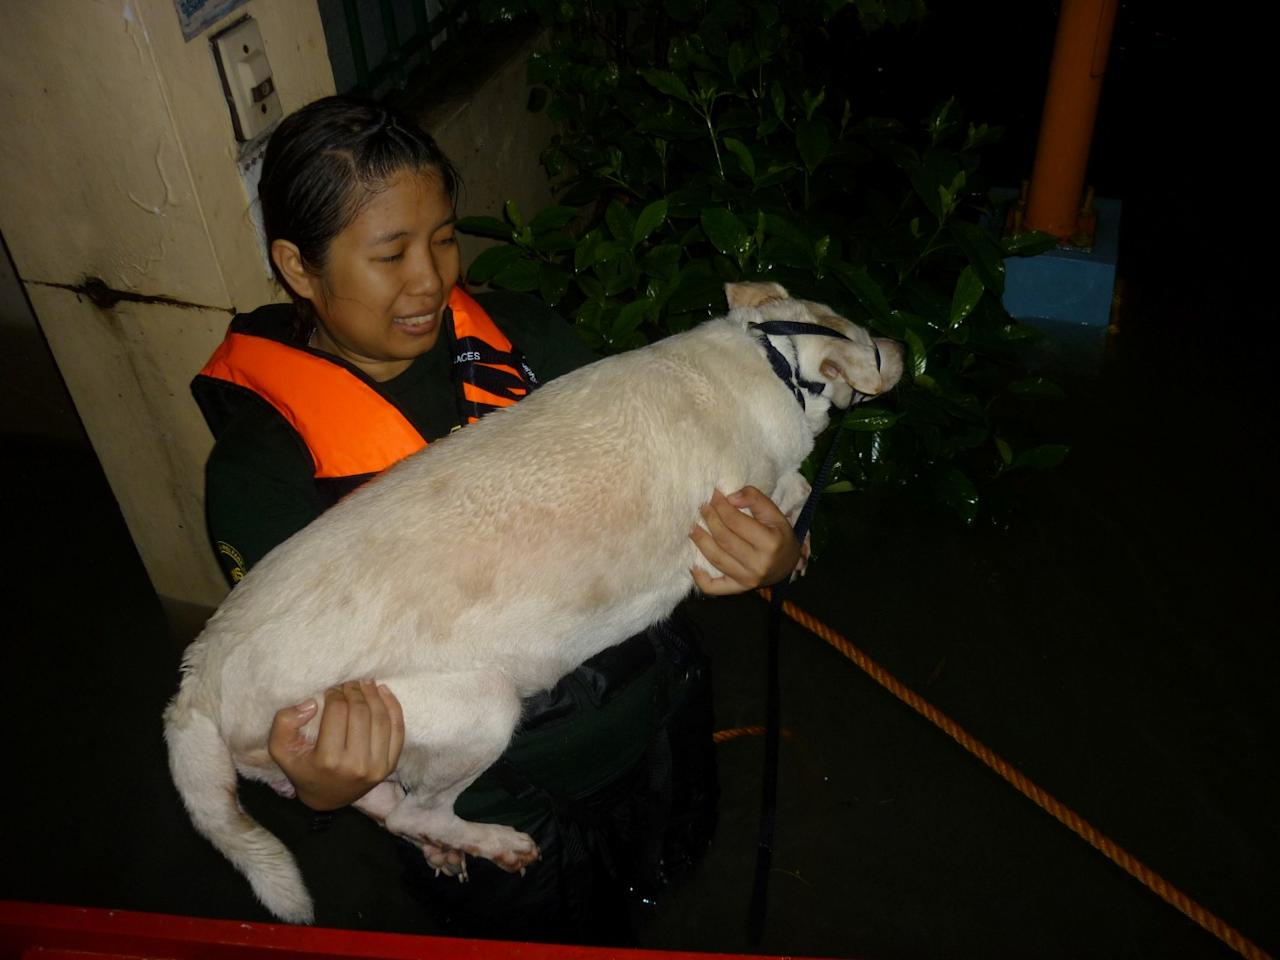 PAWS volunteer Cha Laxamana carries a stranded dog to safety in Riverside, Pasig